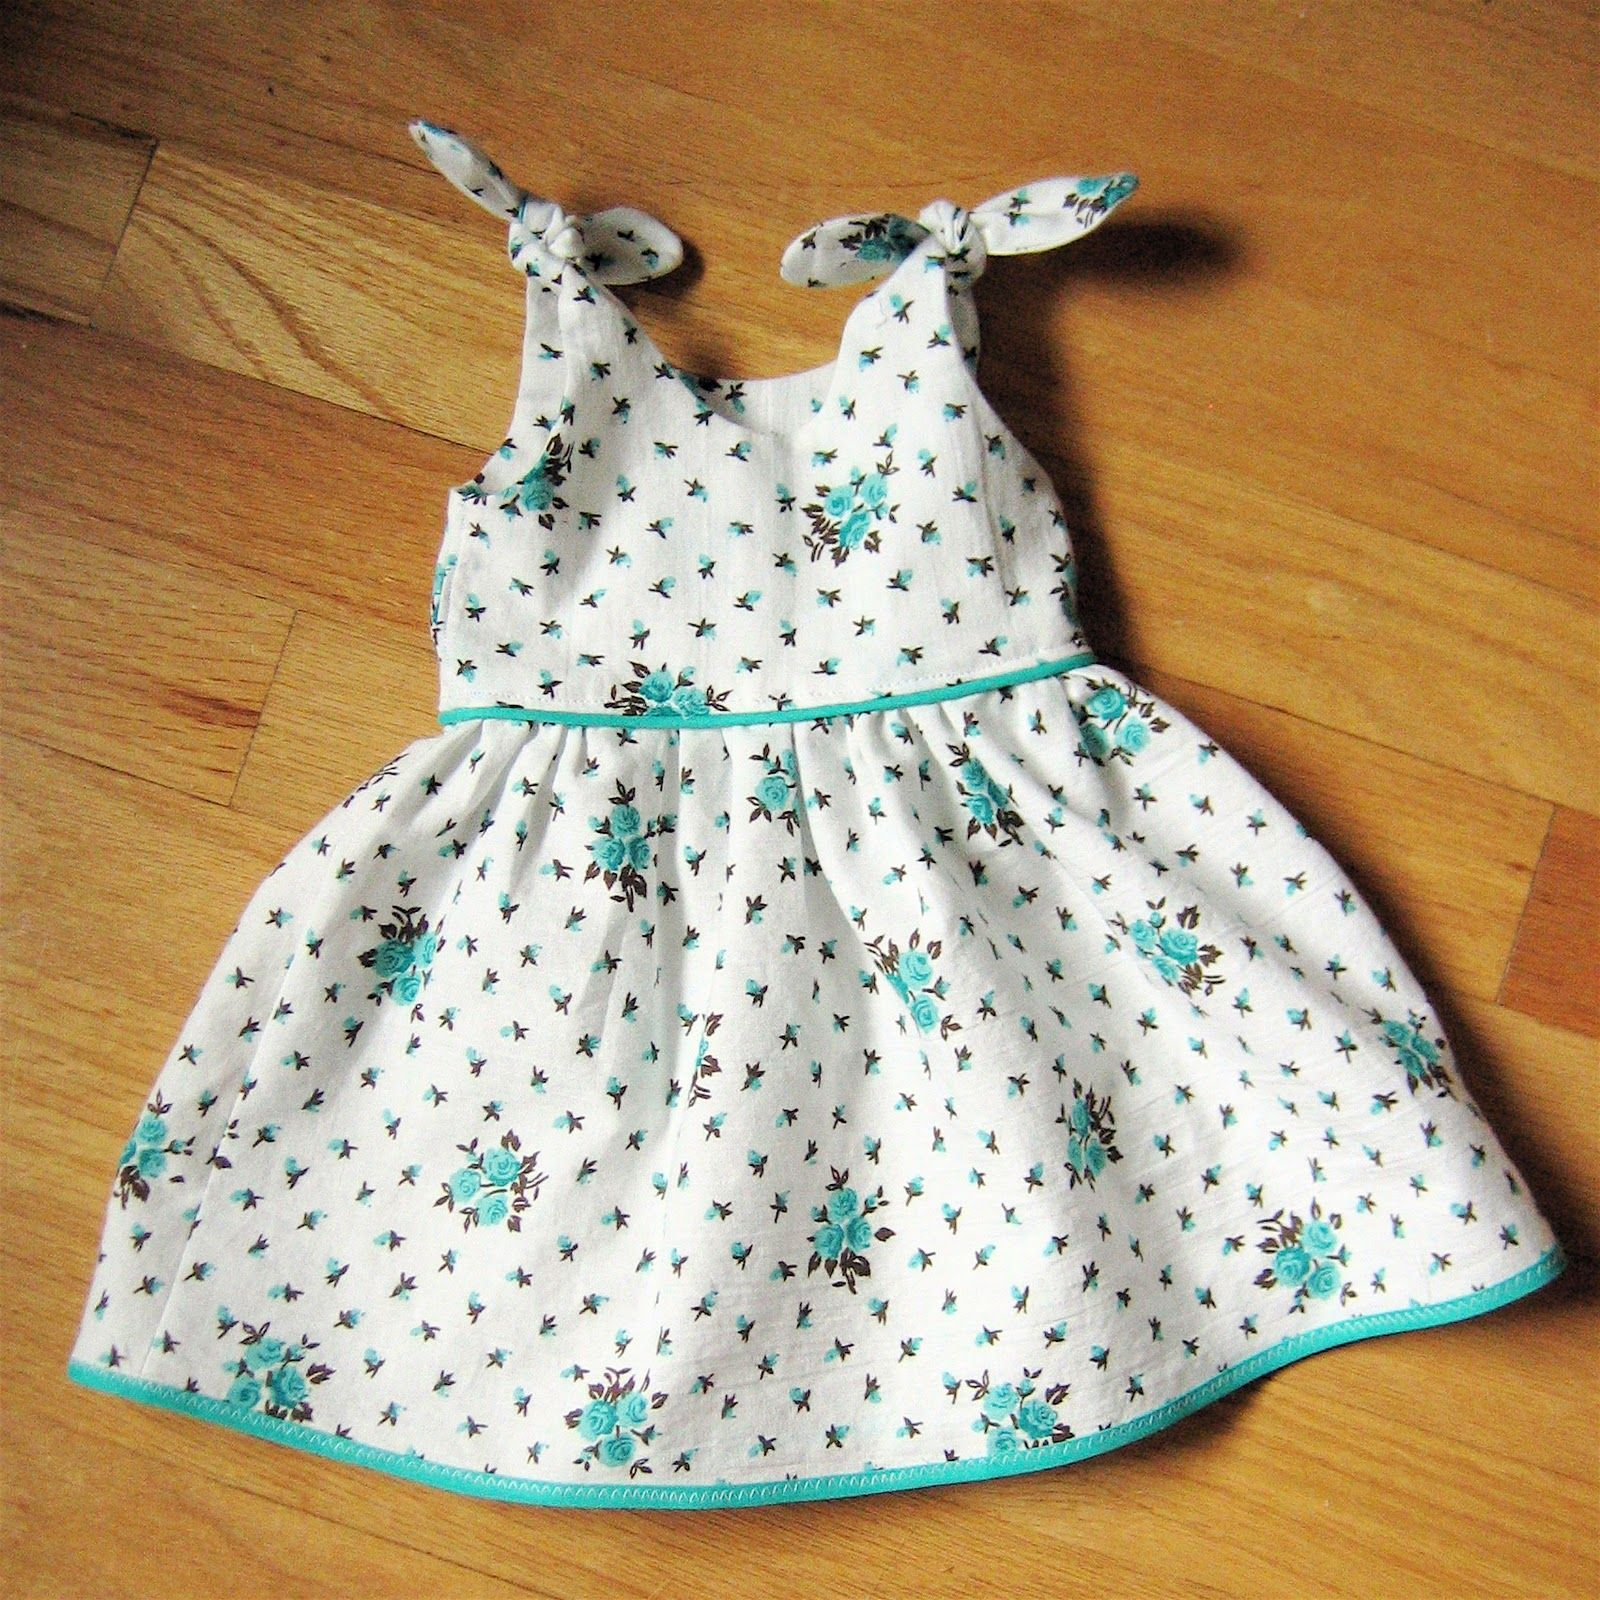 Perfect for 18baby dolls american girl doll clothes free itty bitty baby dress pattern for newborn girls jeuxipadfo Image collections